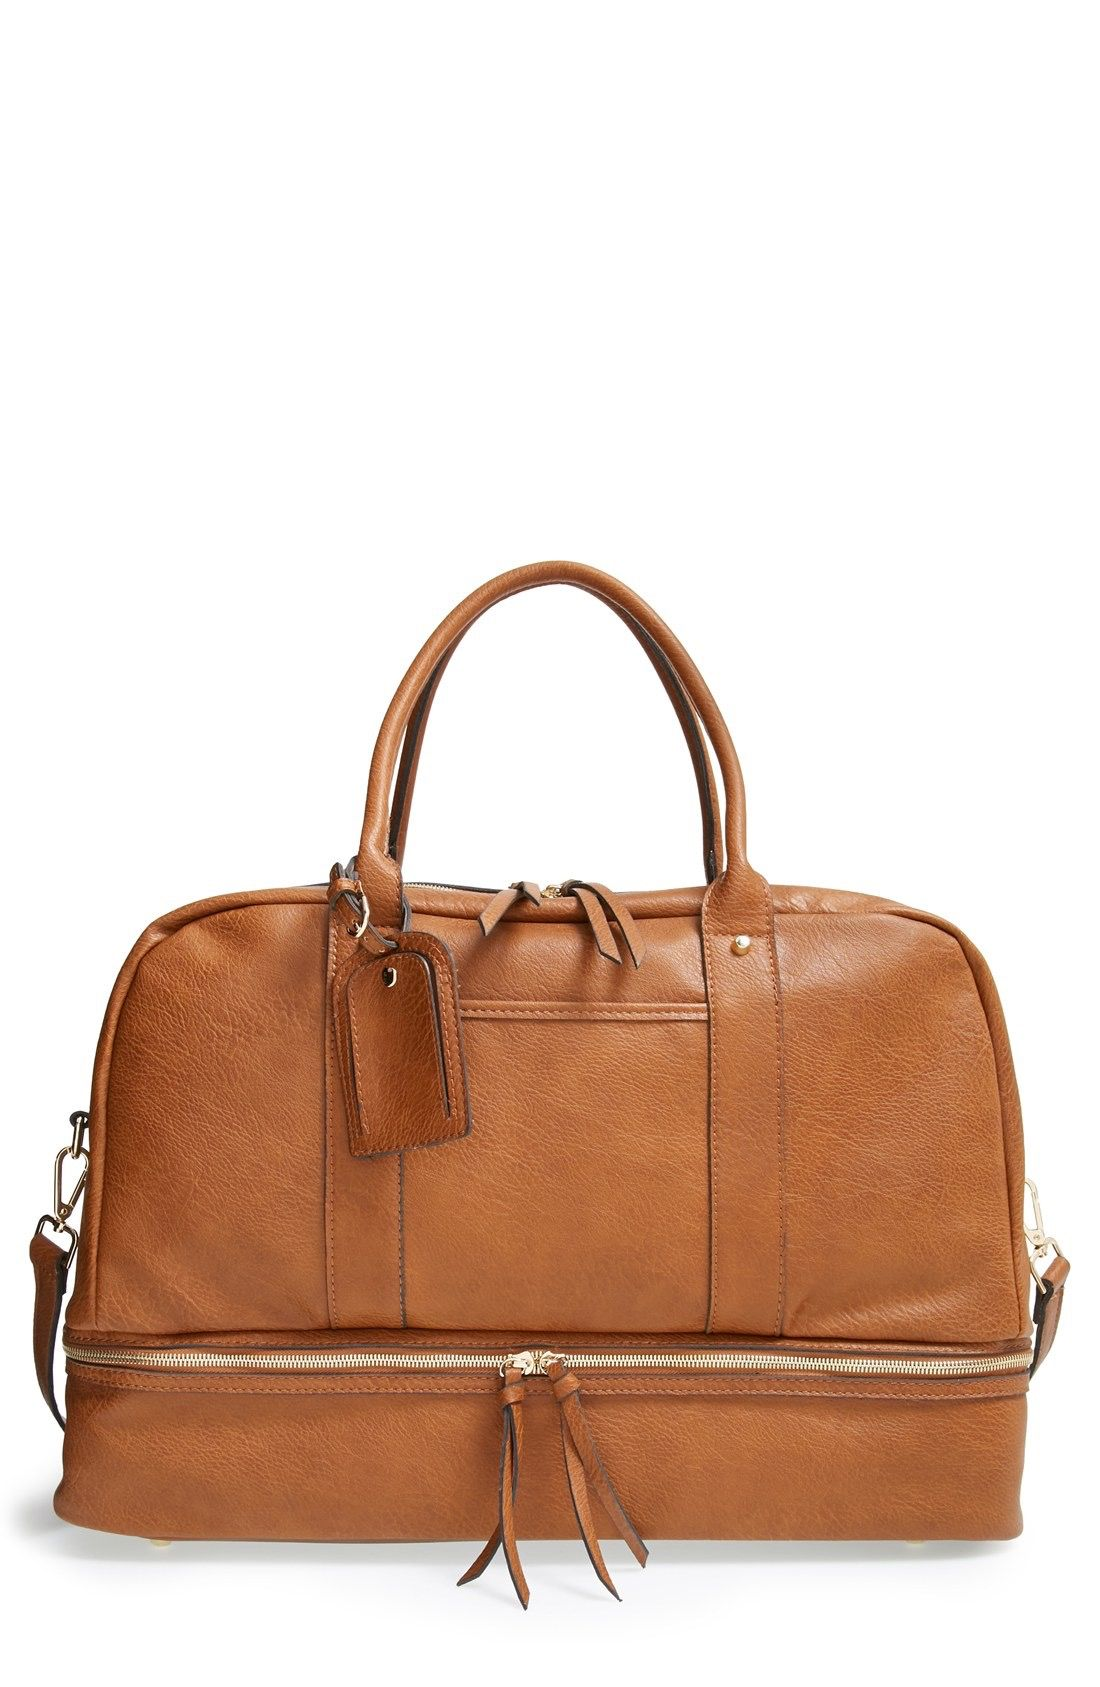 Sole Society  Mason  Faux Leather Weekend Bag available at  Nordstrom 2f343feb31c71